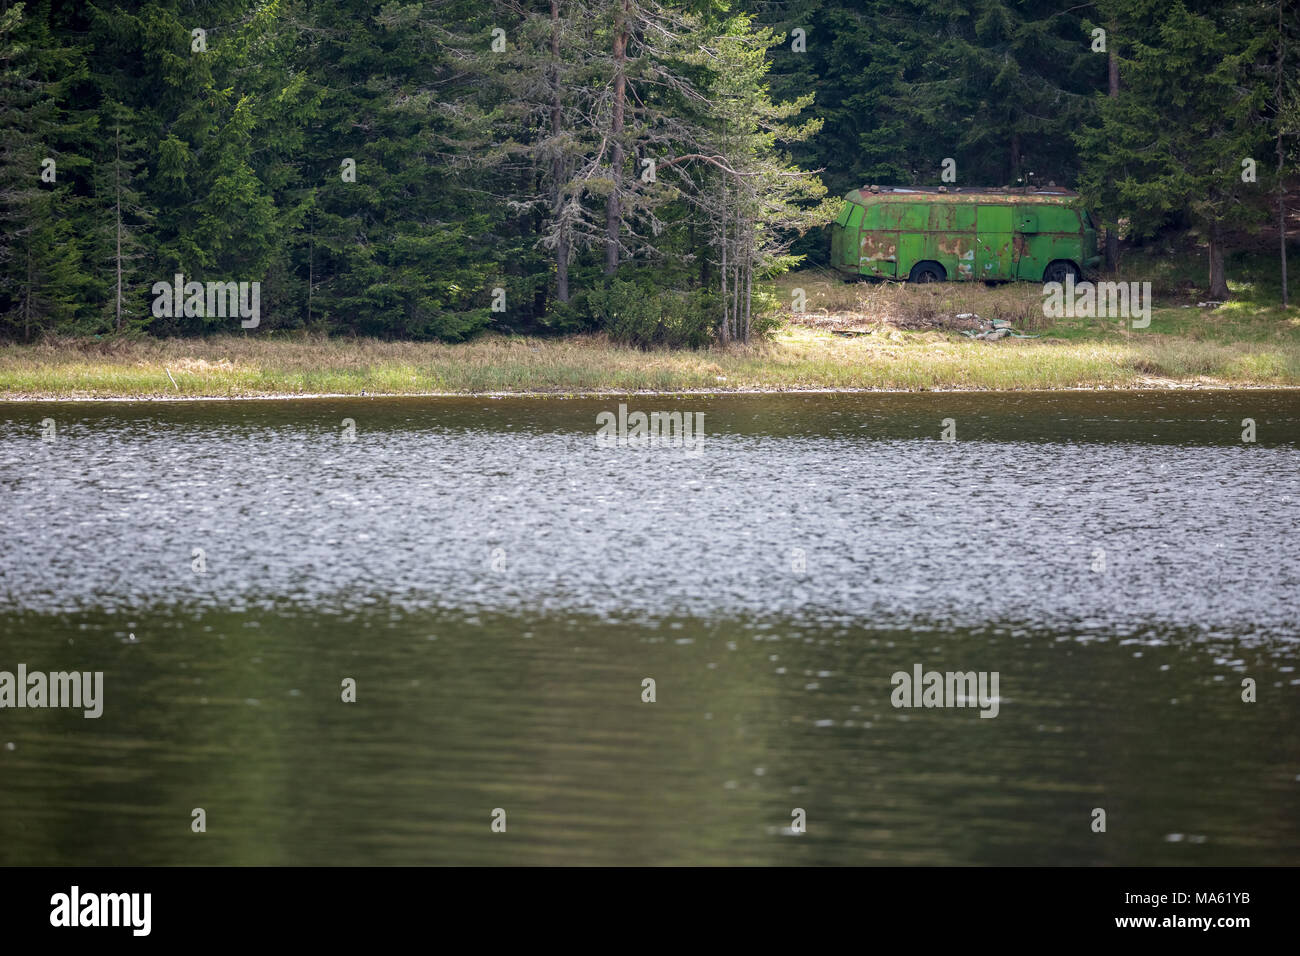 Old rusty bus turned into a storage room in the pine tree forest at the shore of the lake of Shiroka Polyana in Rhodope mountain, Bulgaria - Stock Image